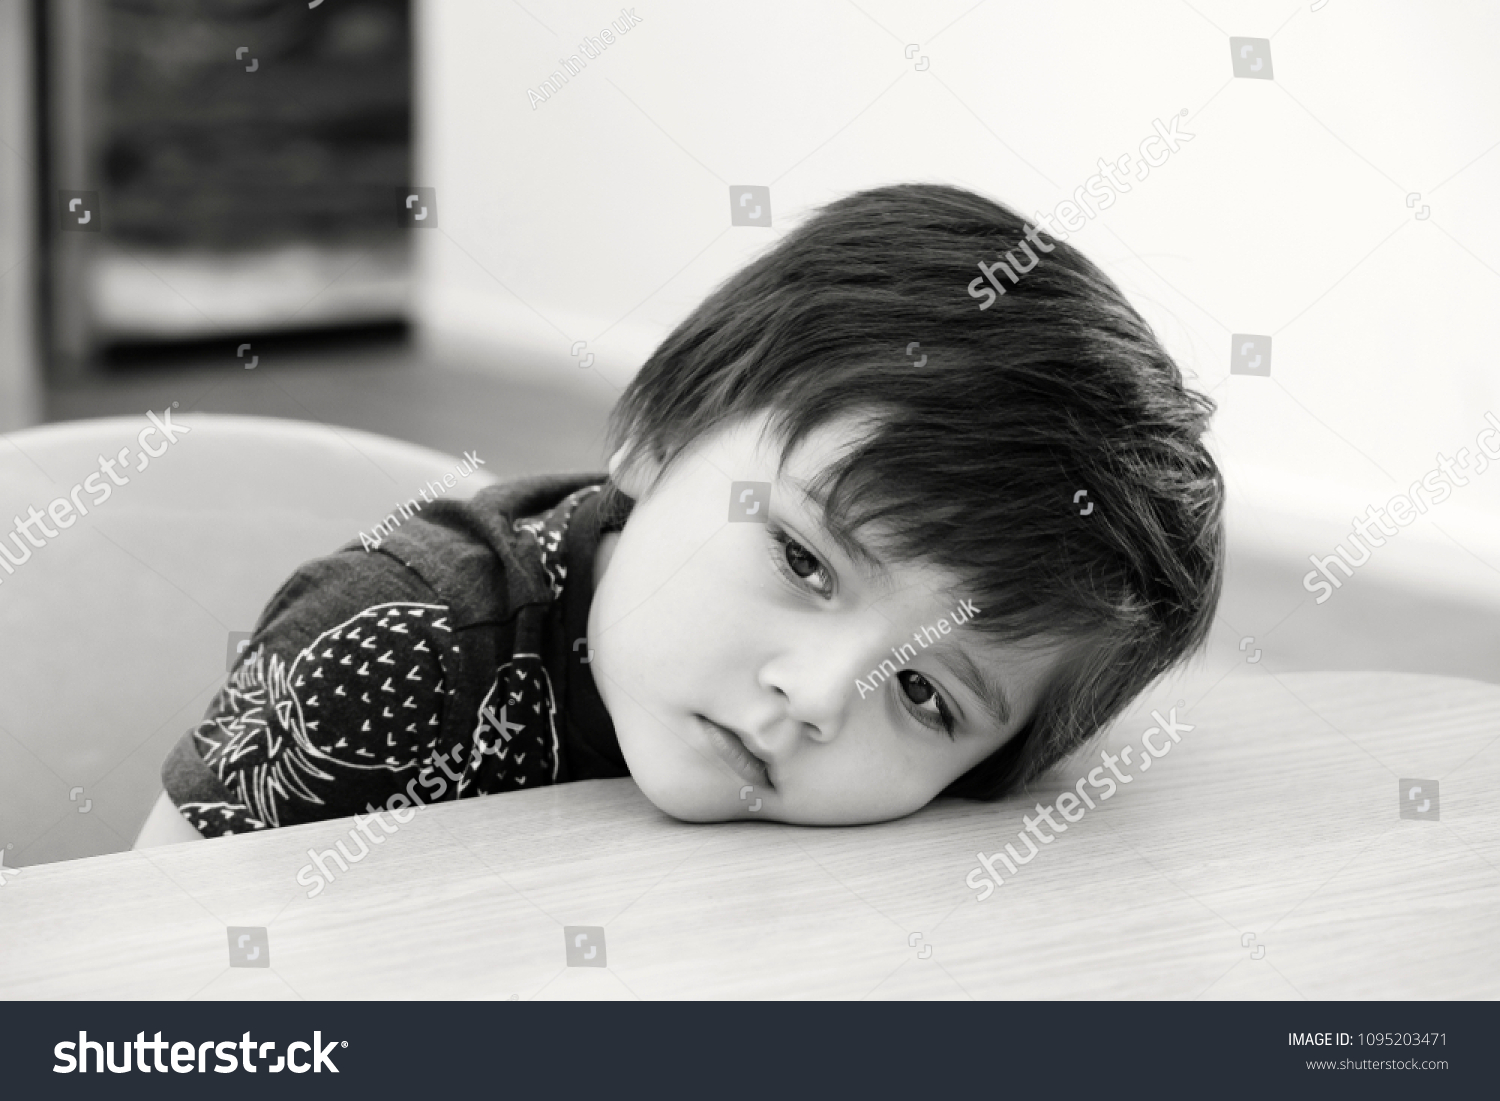 Black and white photo of lonely kid boy sitting alone putting head down with bored face